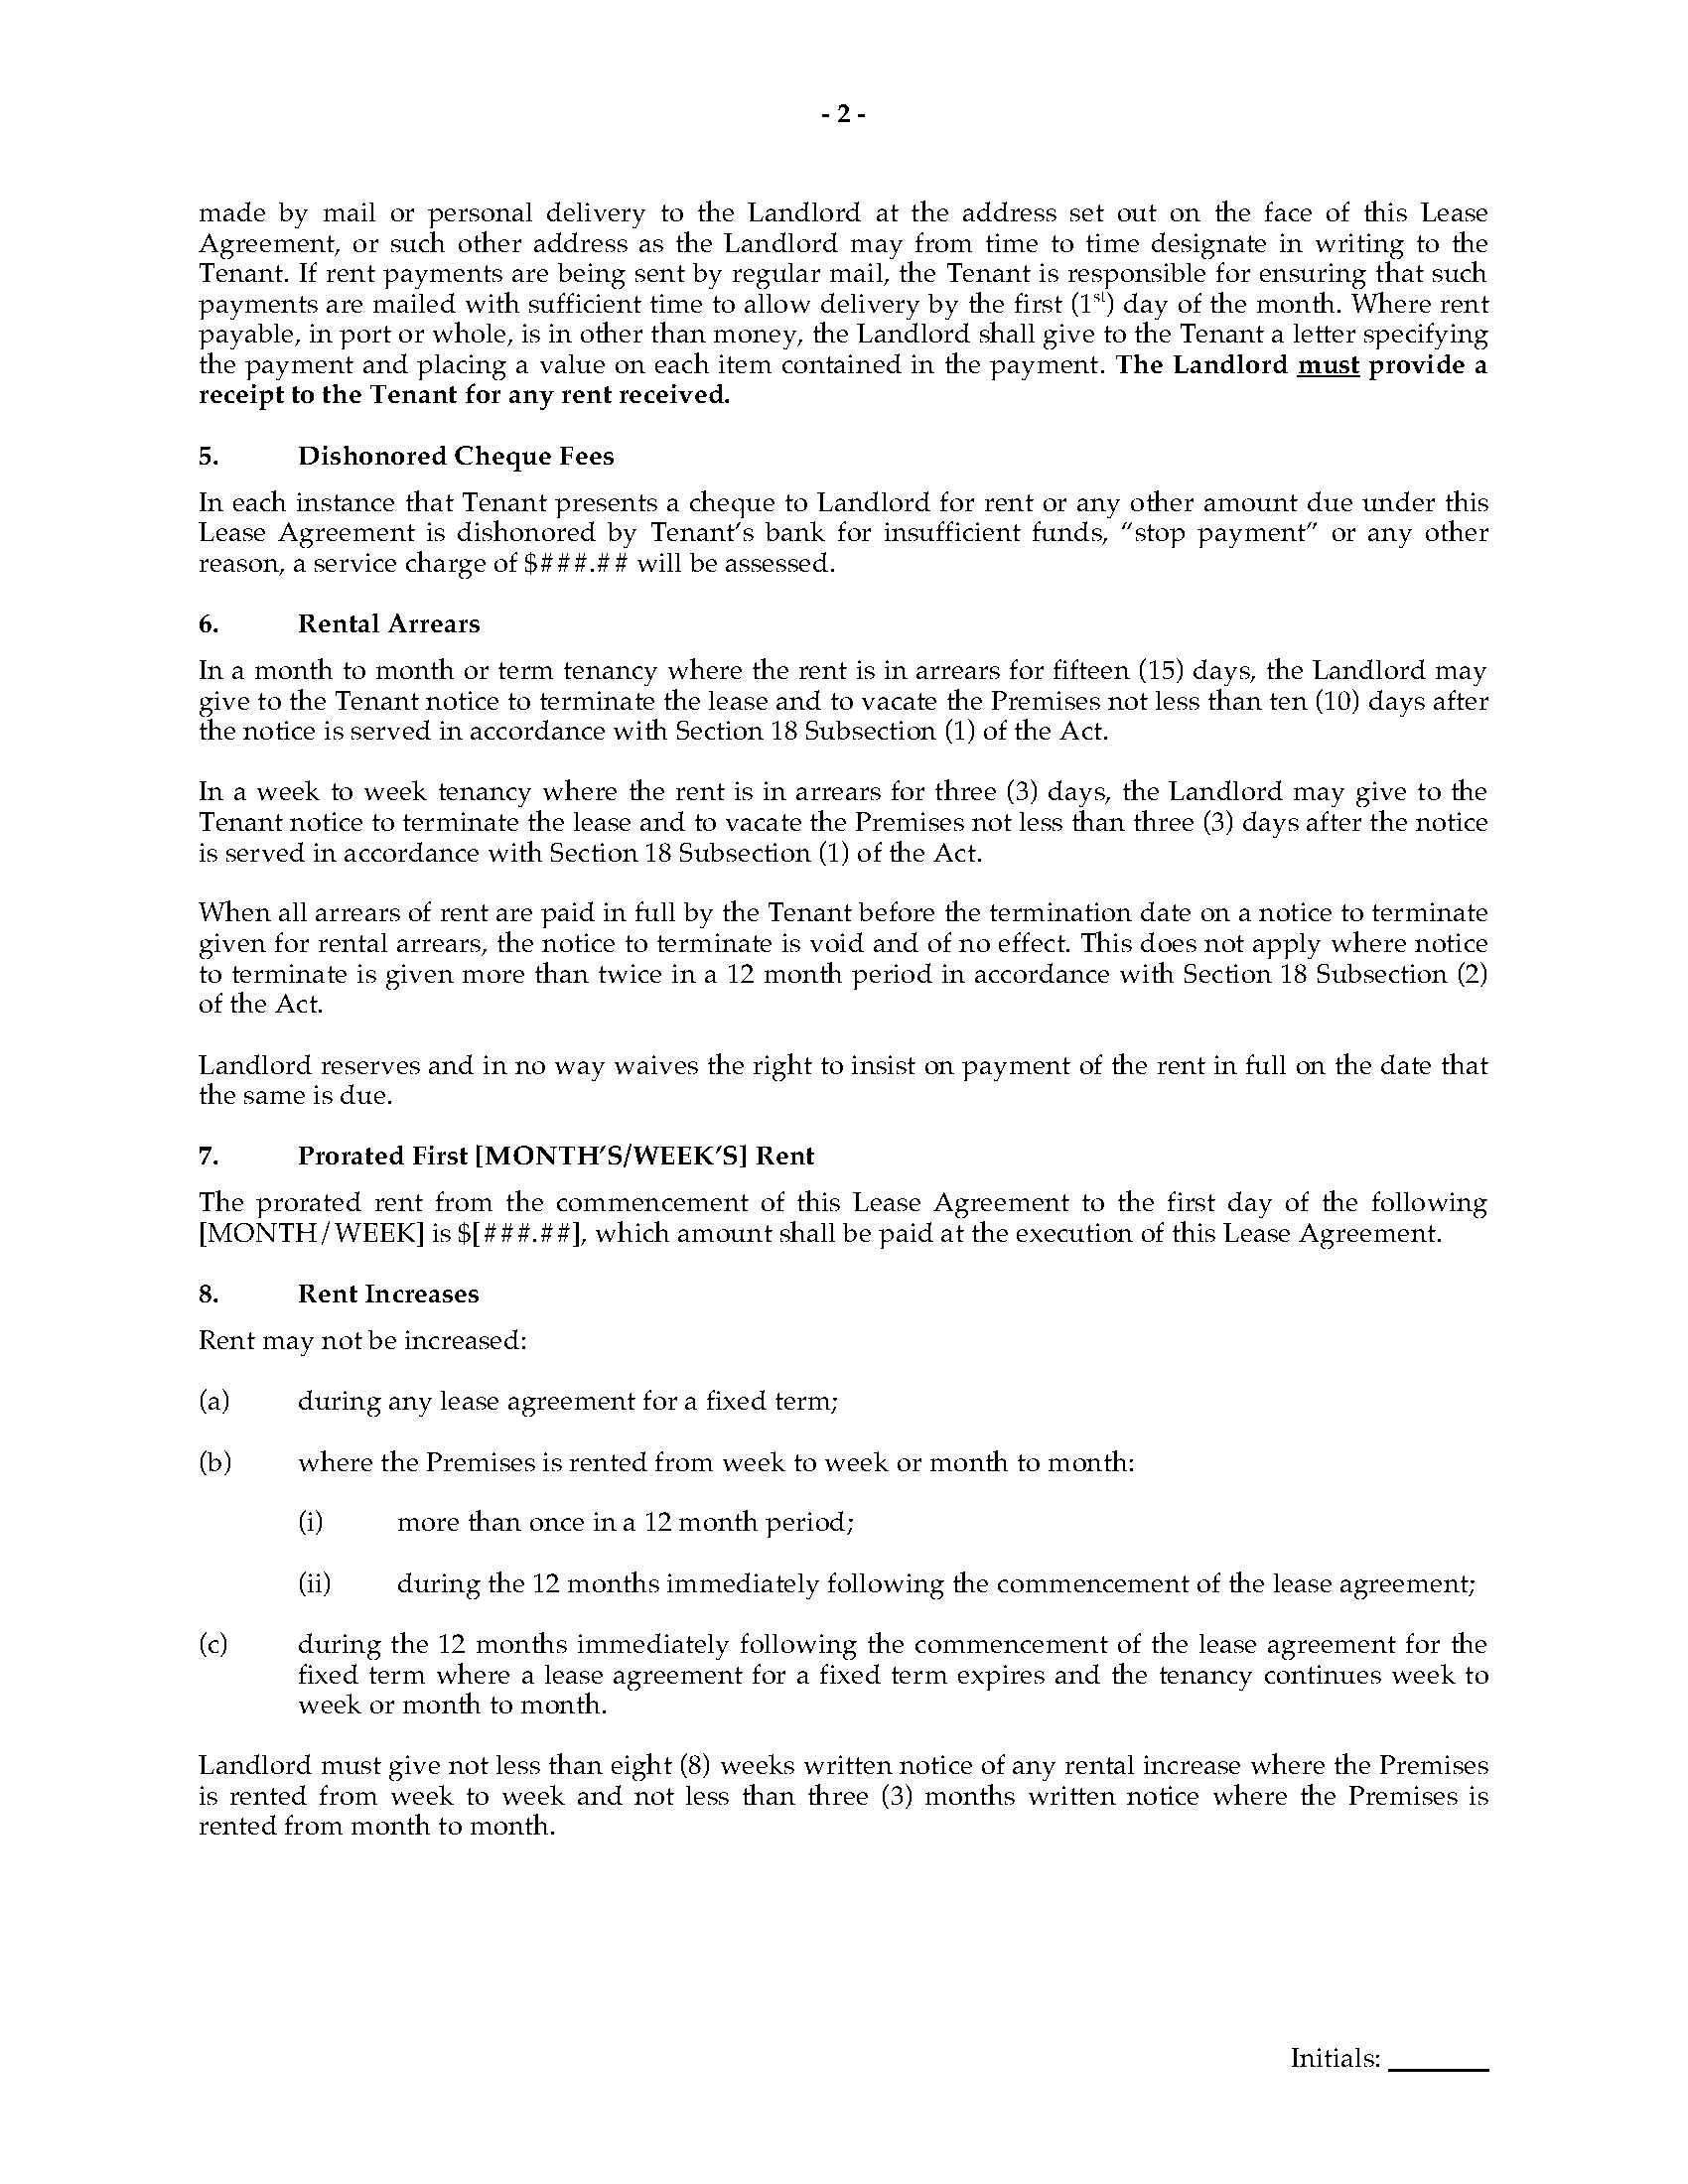 0009591_preview Pennsylvania Star Mobile Home Manufactured Site Lease Agreement on